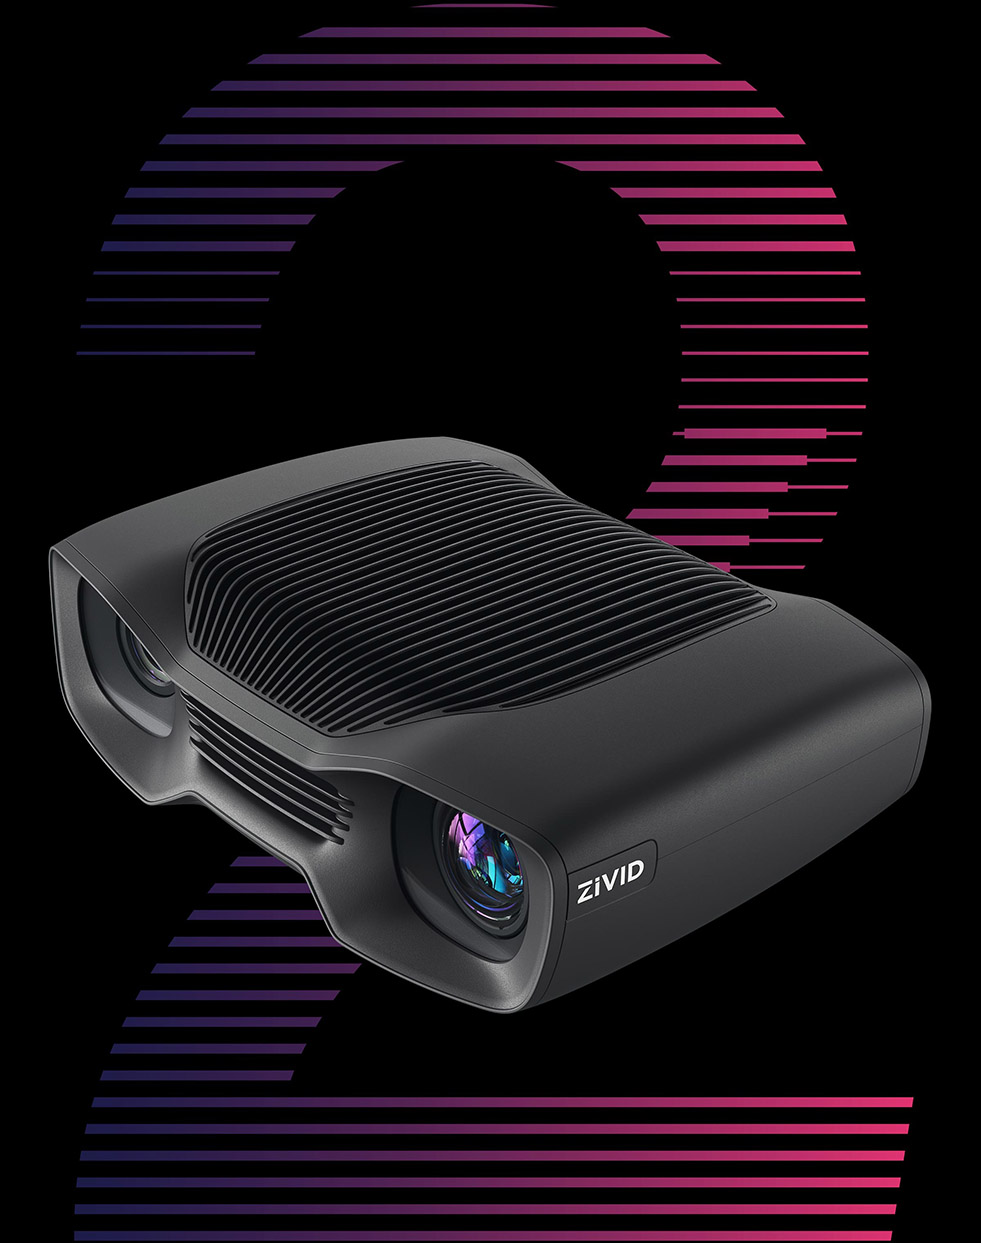 Zivid Two